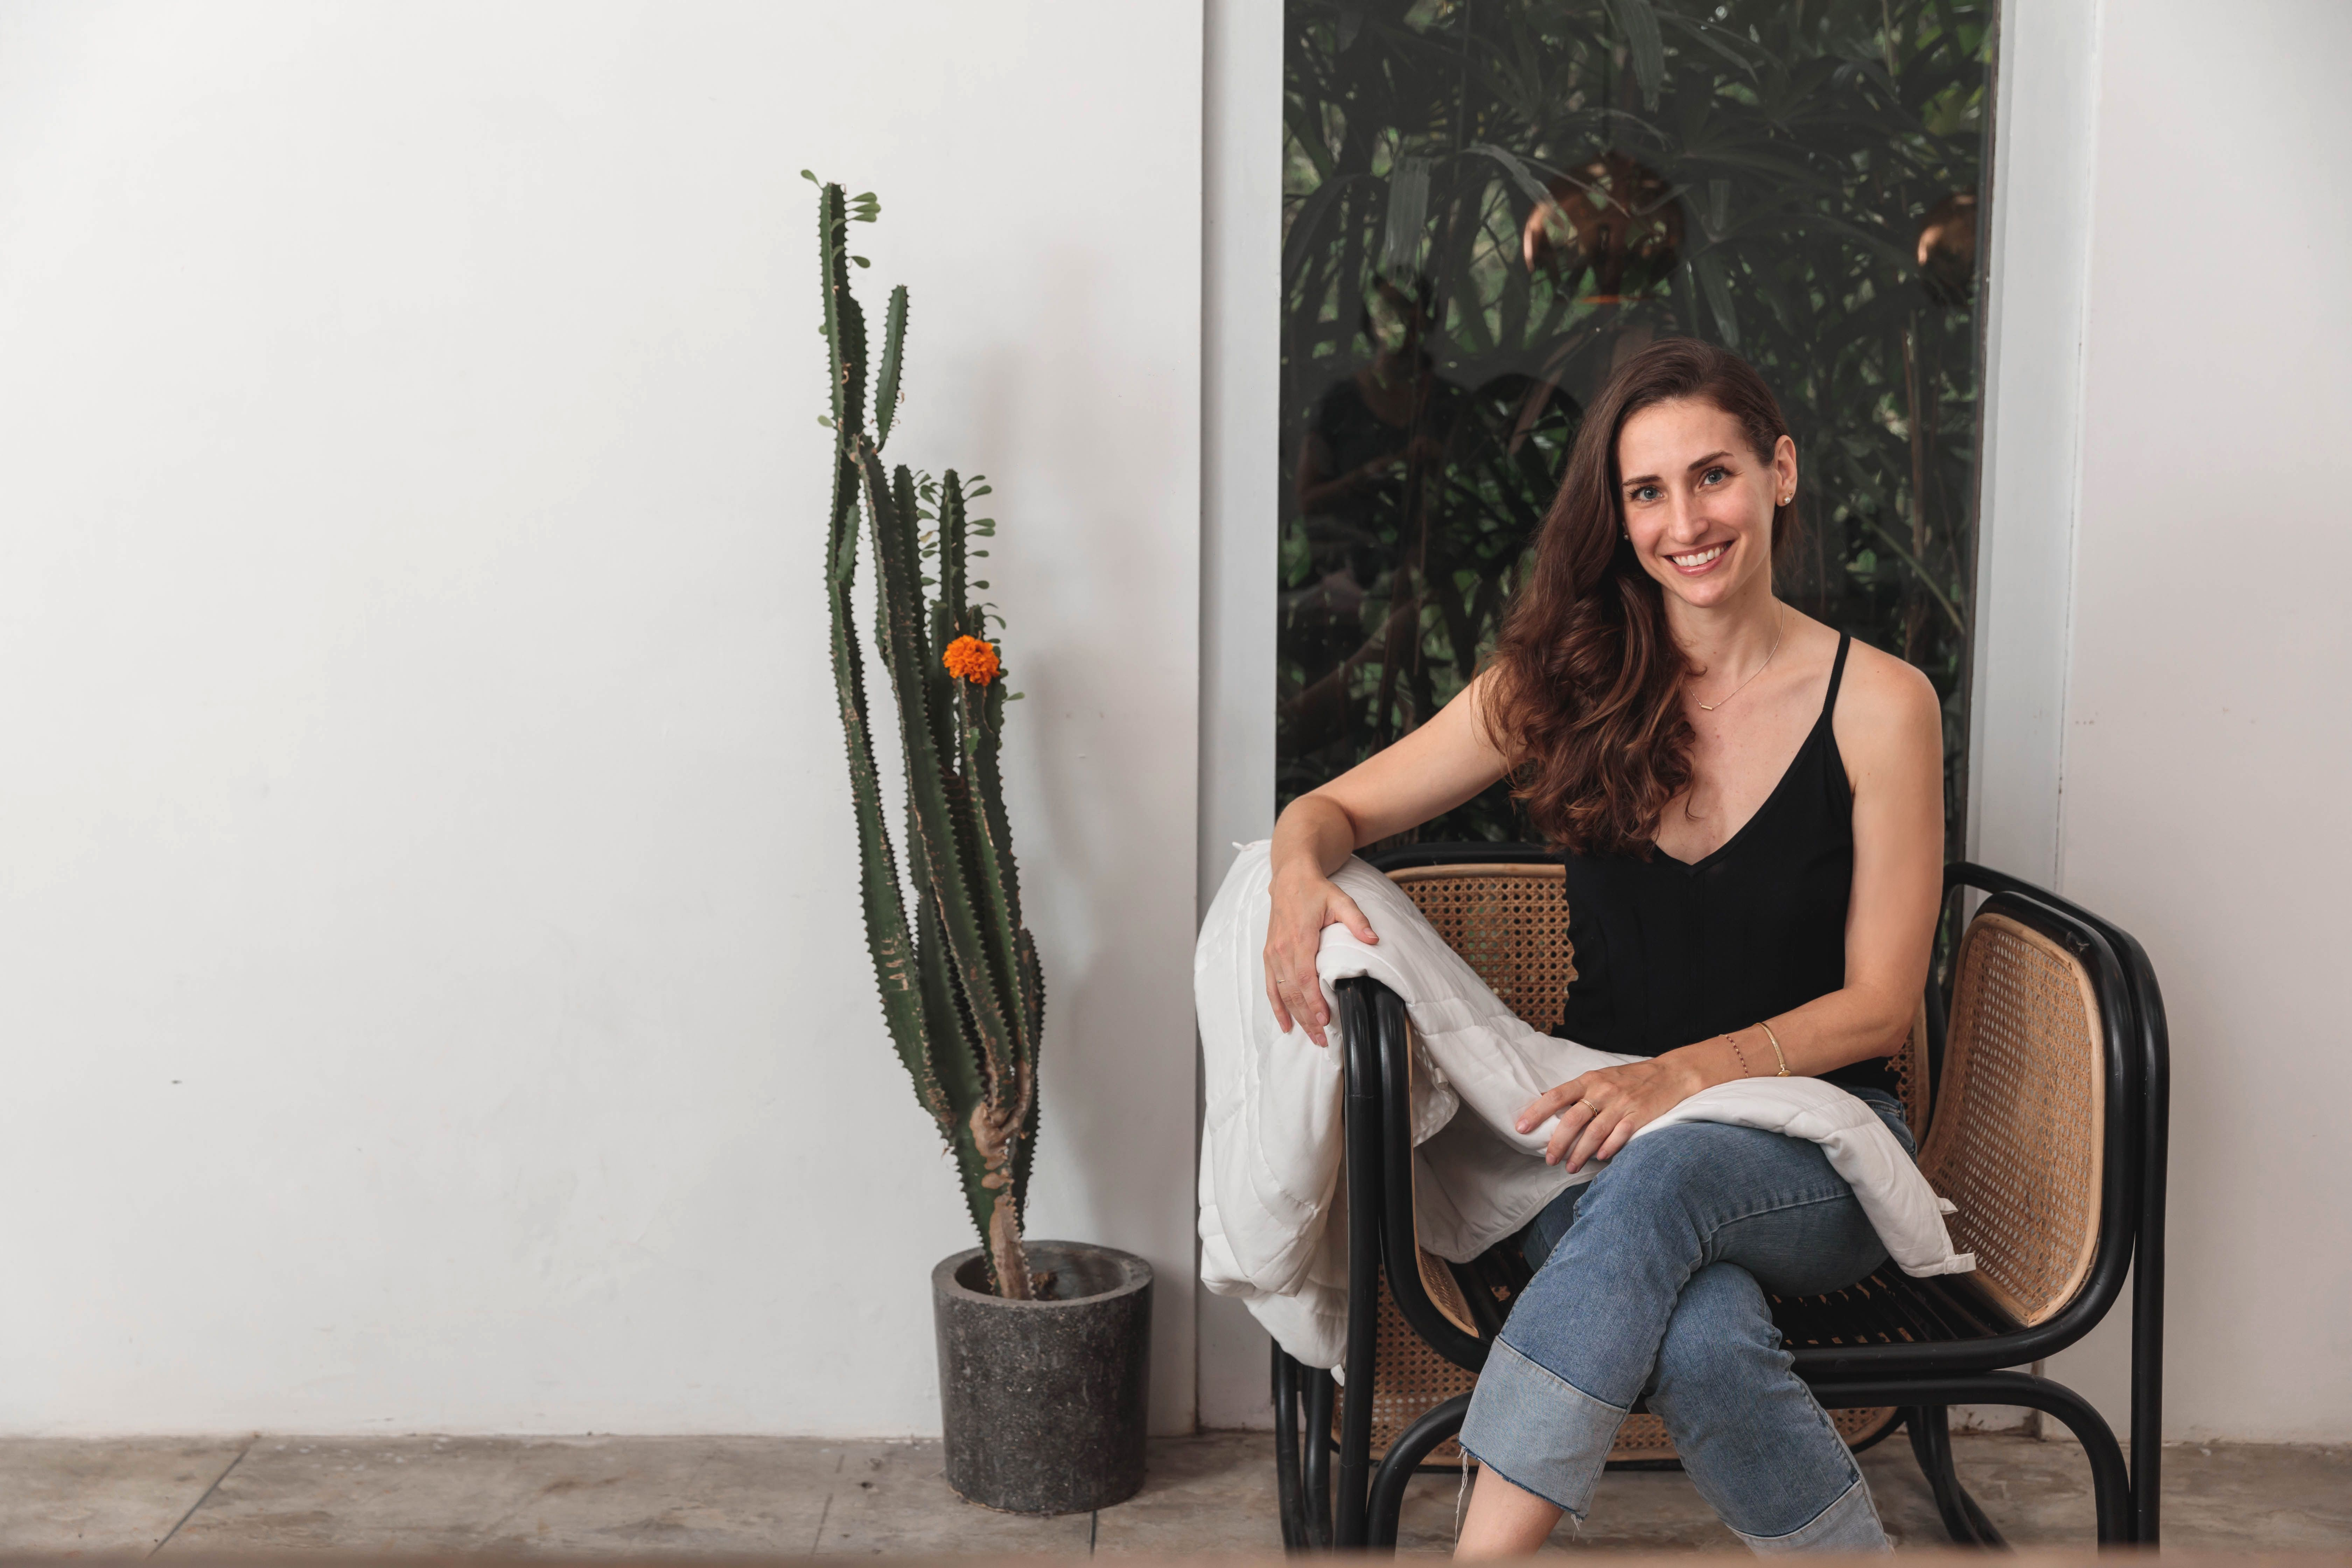 Elizabeth Grojean, Founder of Baloo Living, weighted blankets made from 100% natural cotton